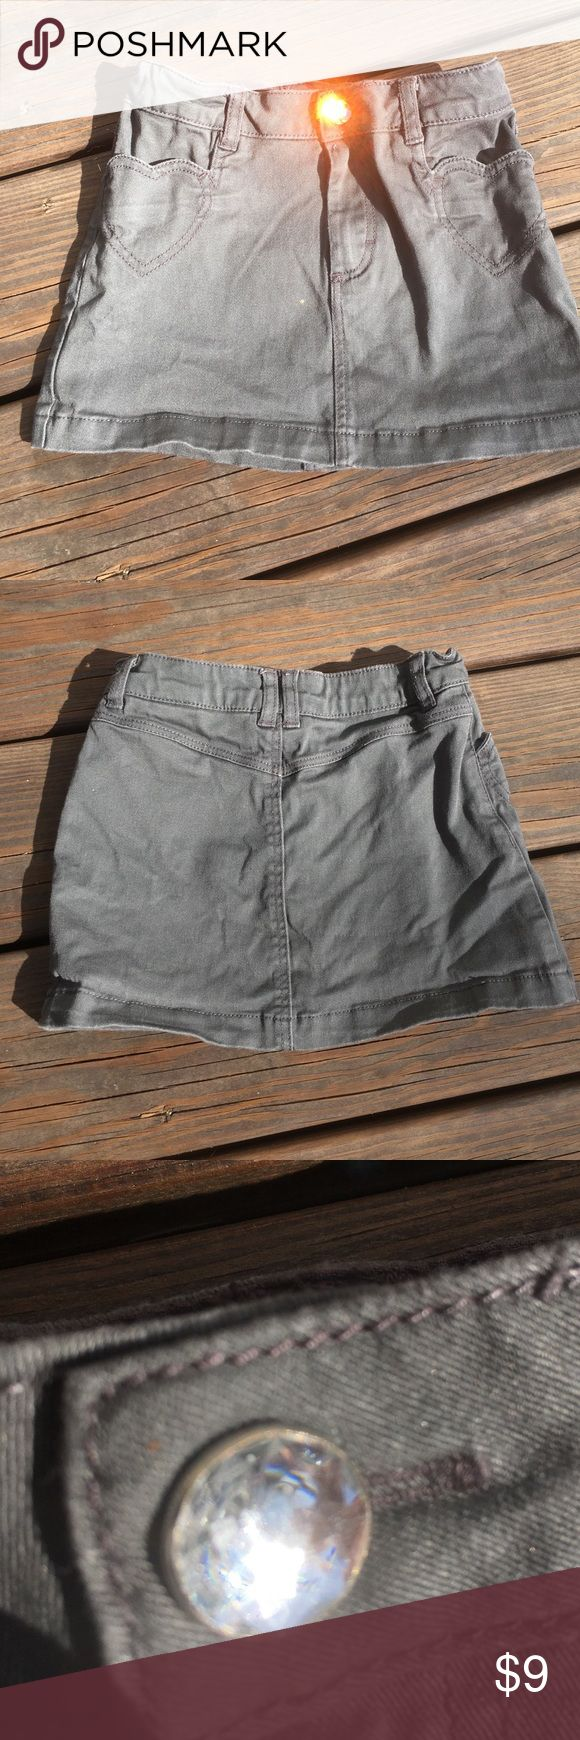 H and M skirt Size 3/4. Adjustable elastic waist straps. H&M Bottoms Skirts